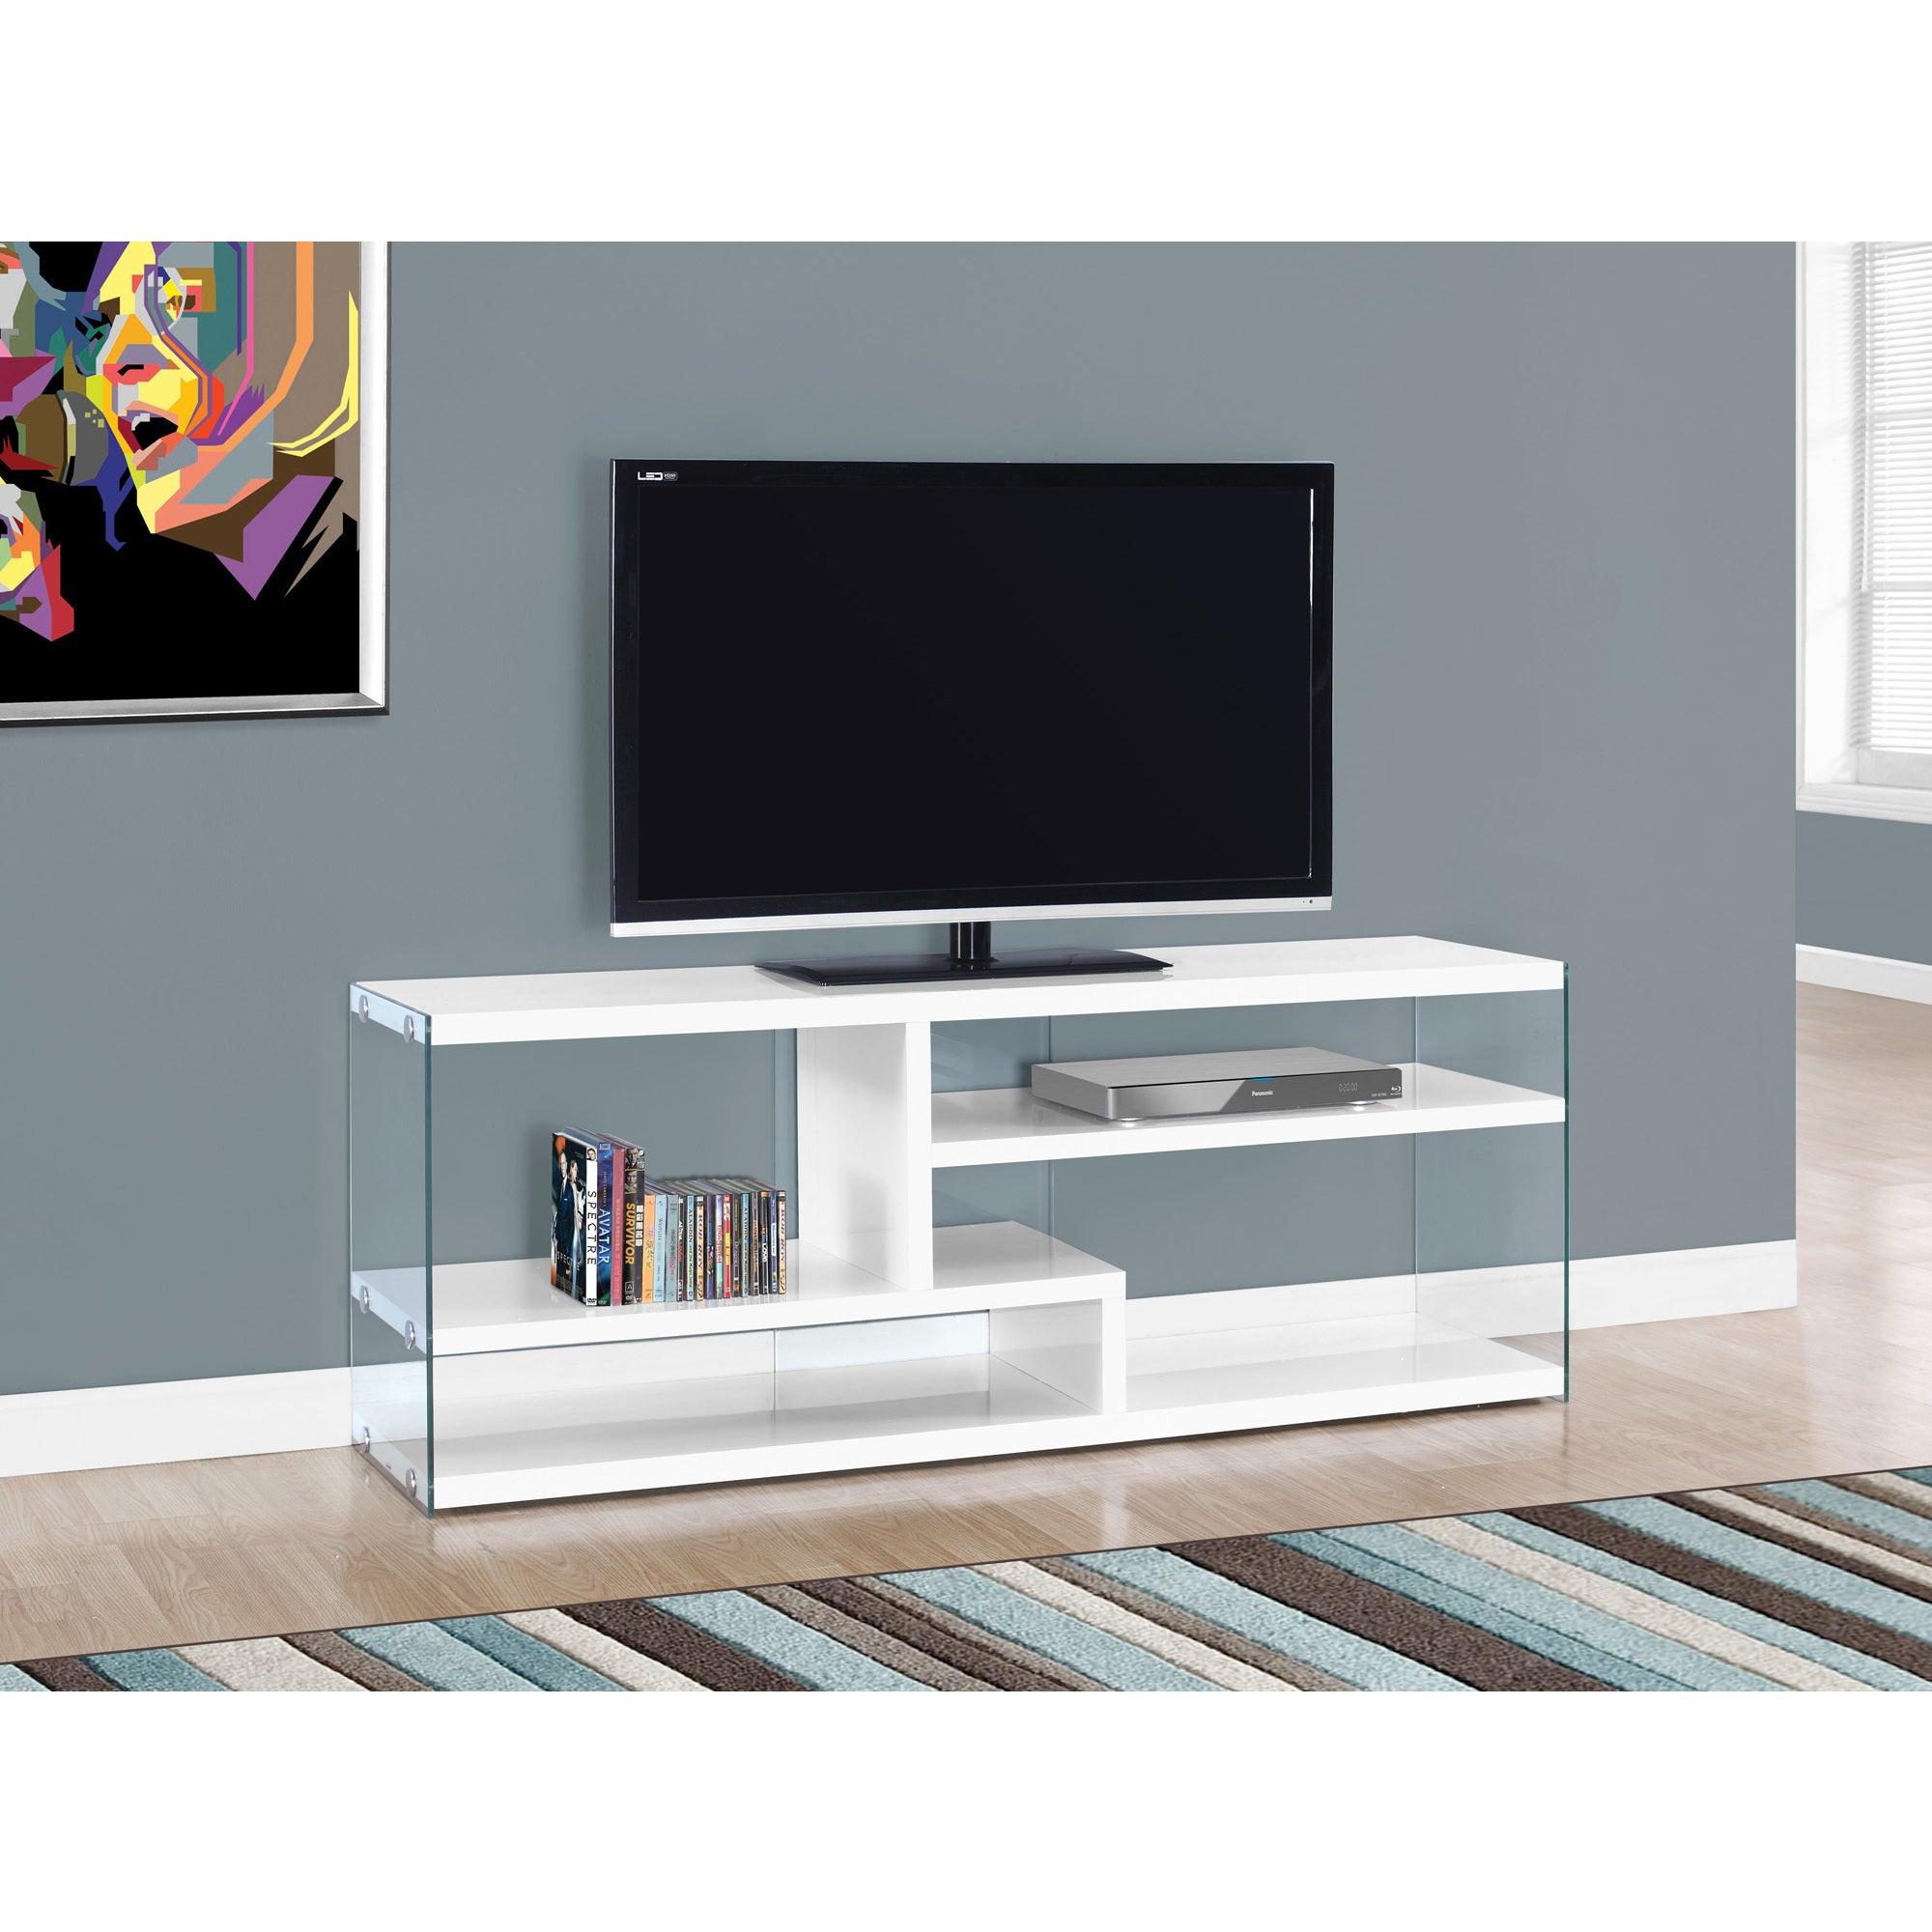 Shop Oliver & James Markus Glossy Tempered Glass TV Stand - Free ...